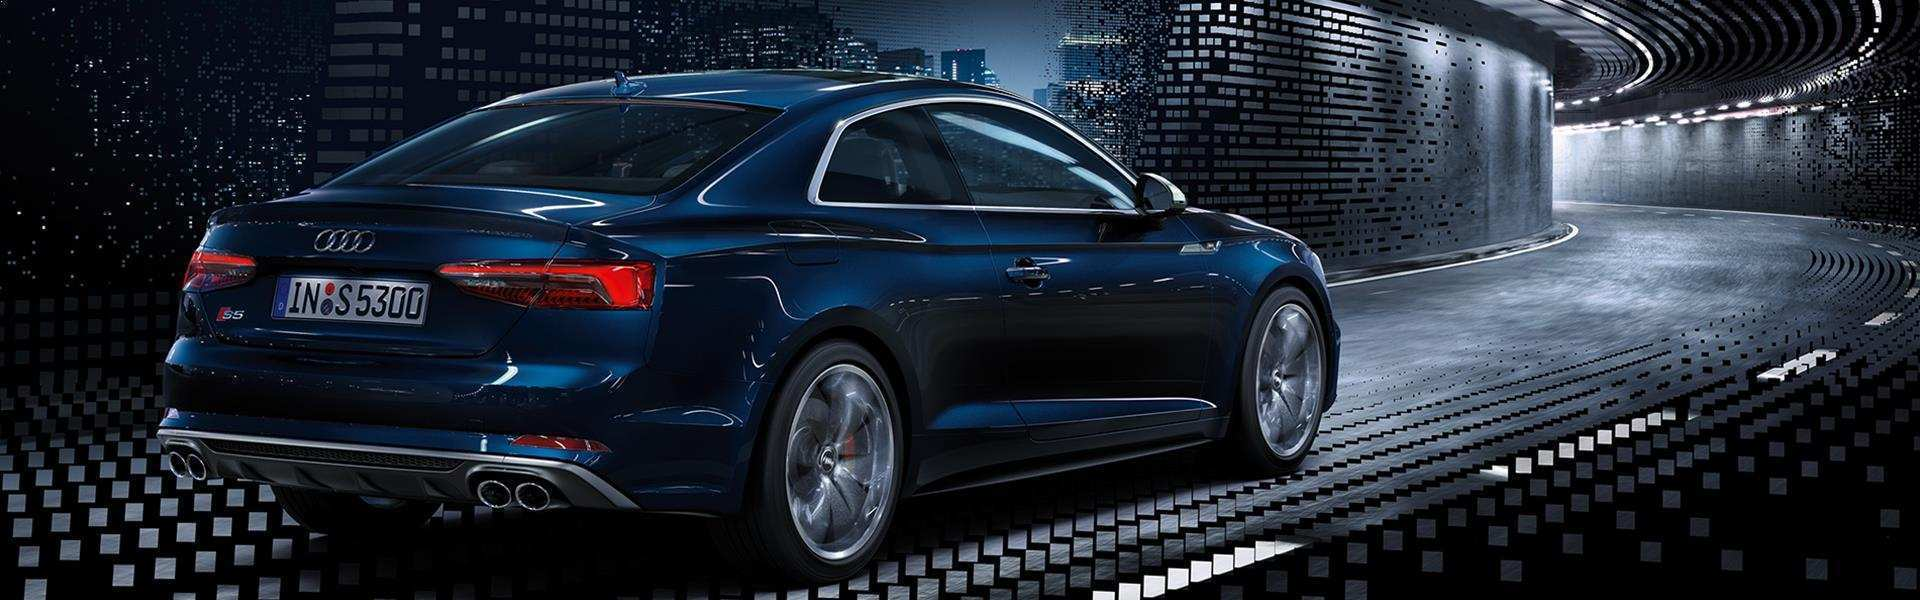 35 The Best 2019 Audi A5s Review